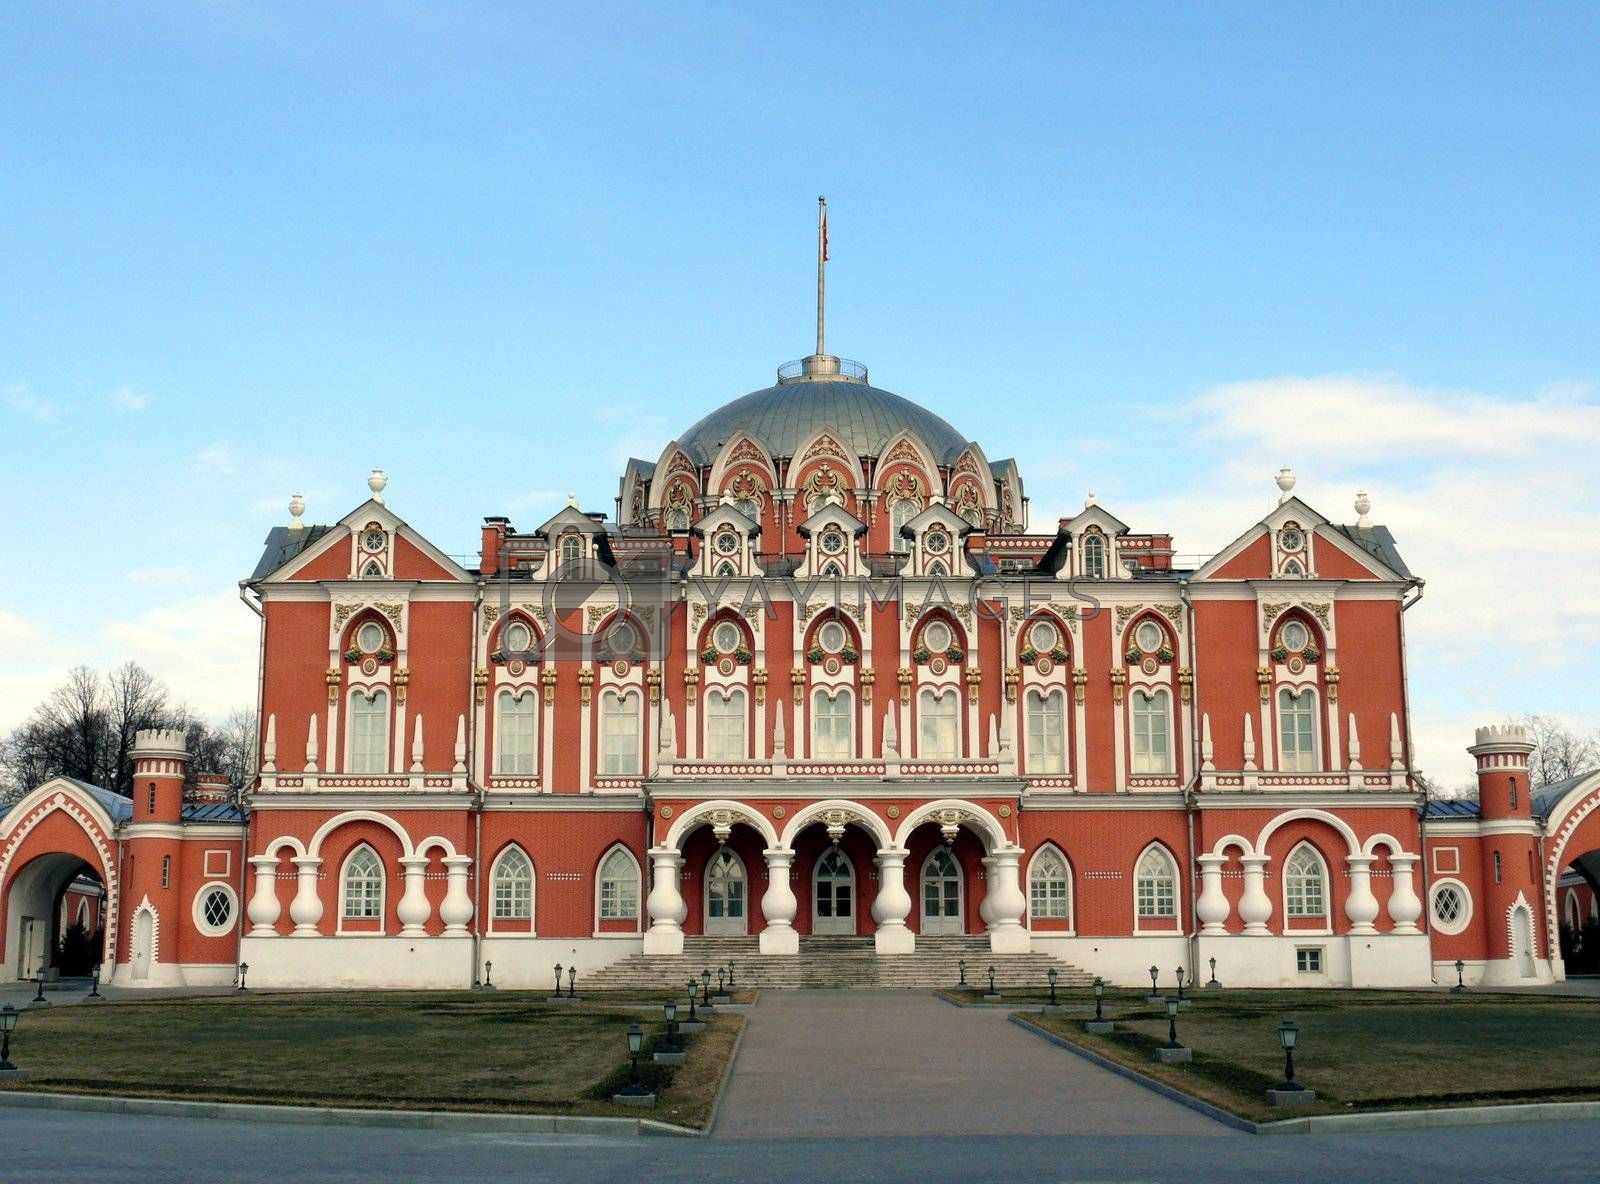 Petrovski travel palace in Moscow, Russia